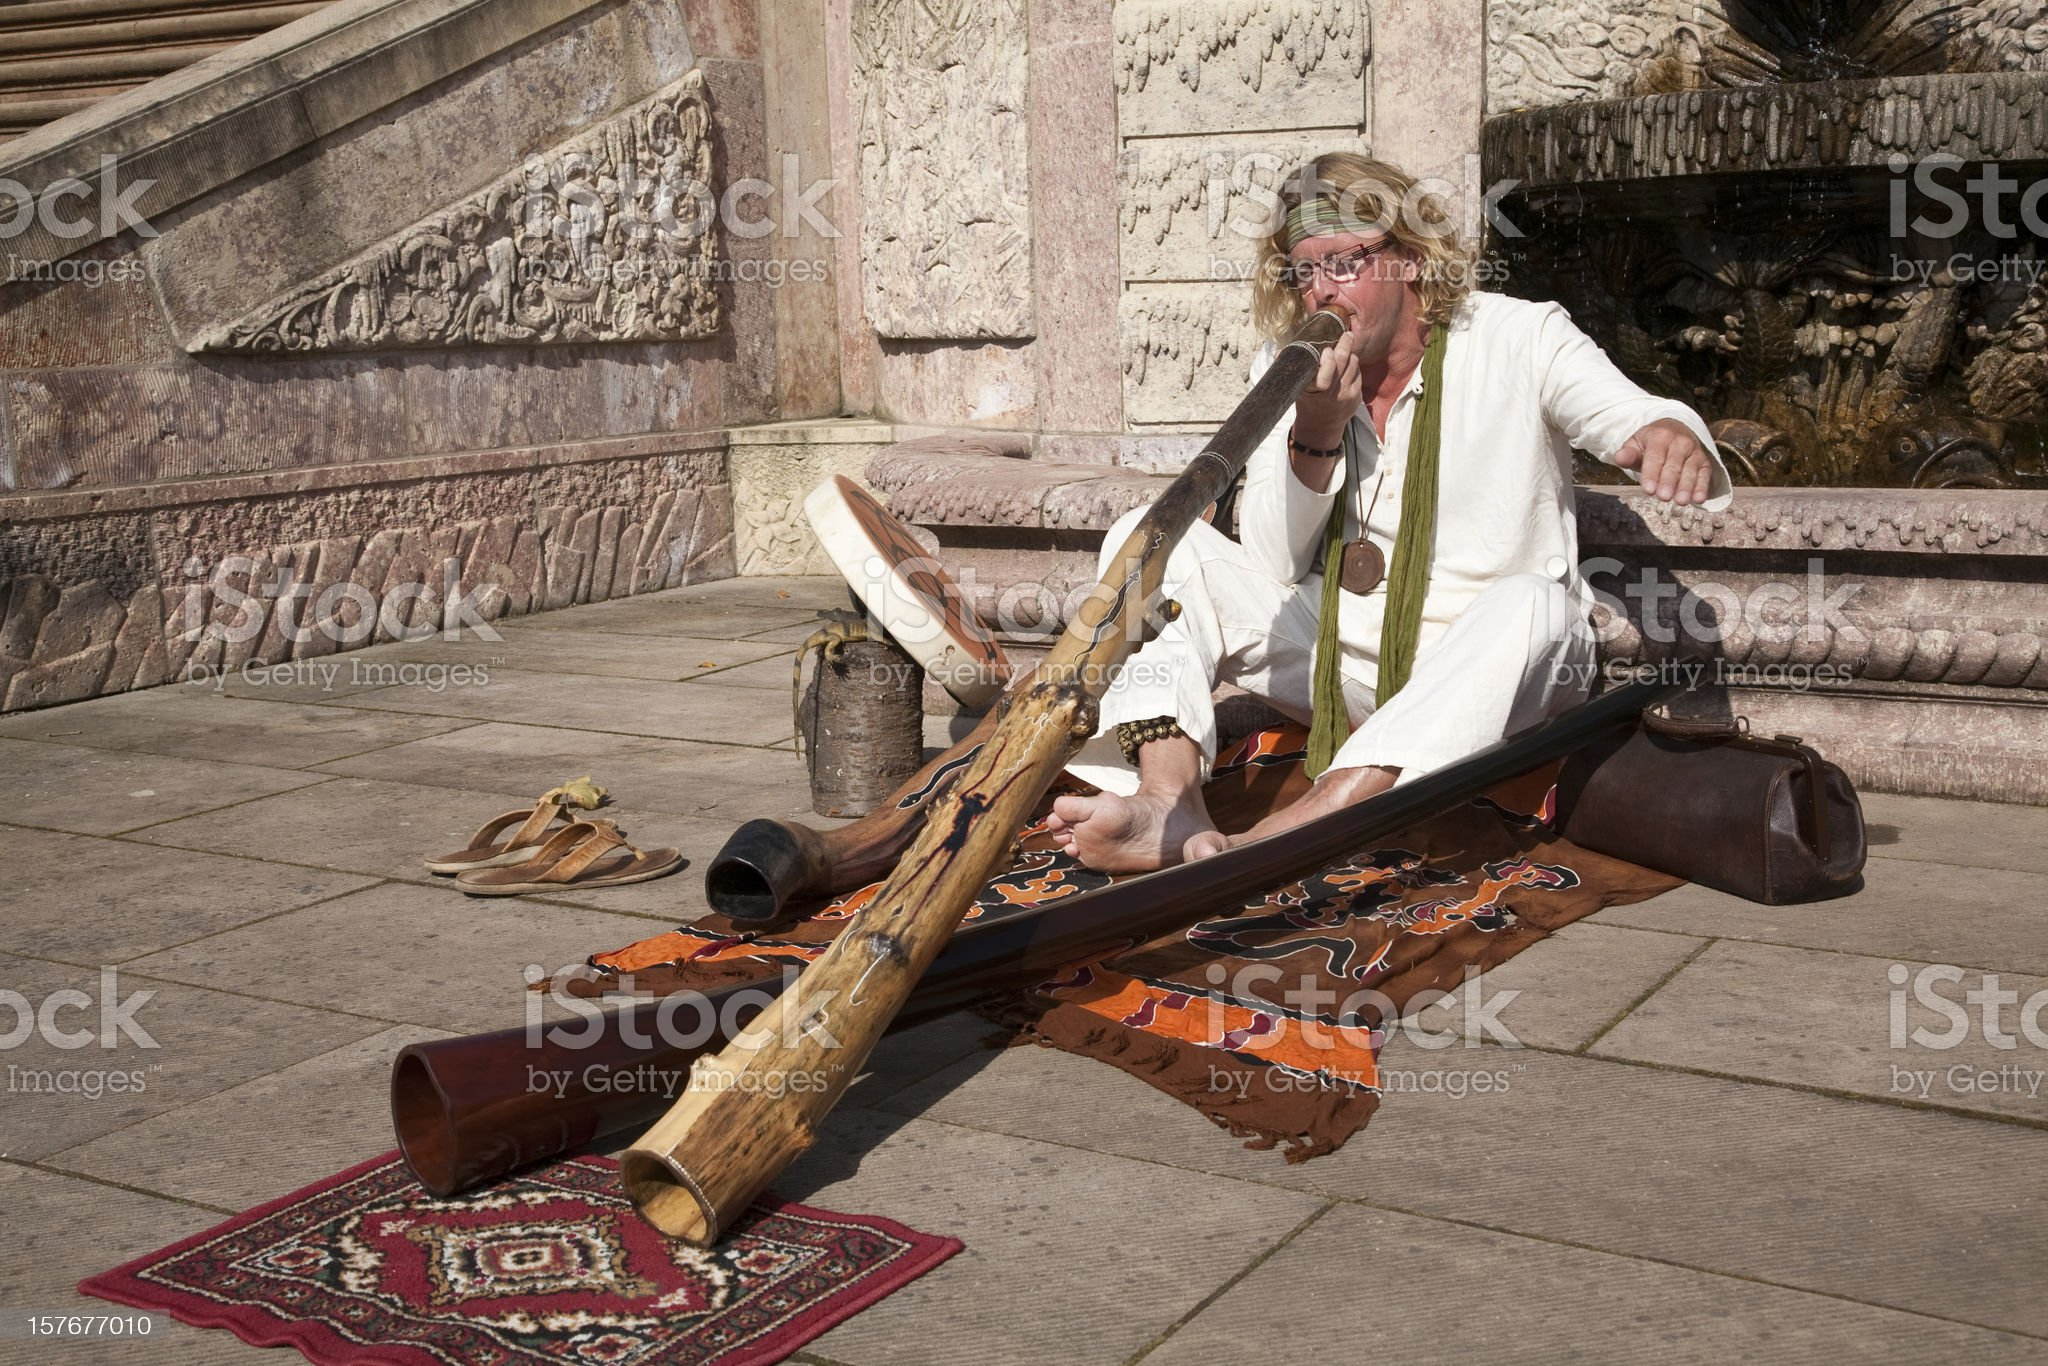 Didgeridoo-Player royalty-free stock photo